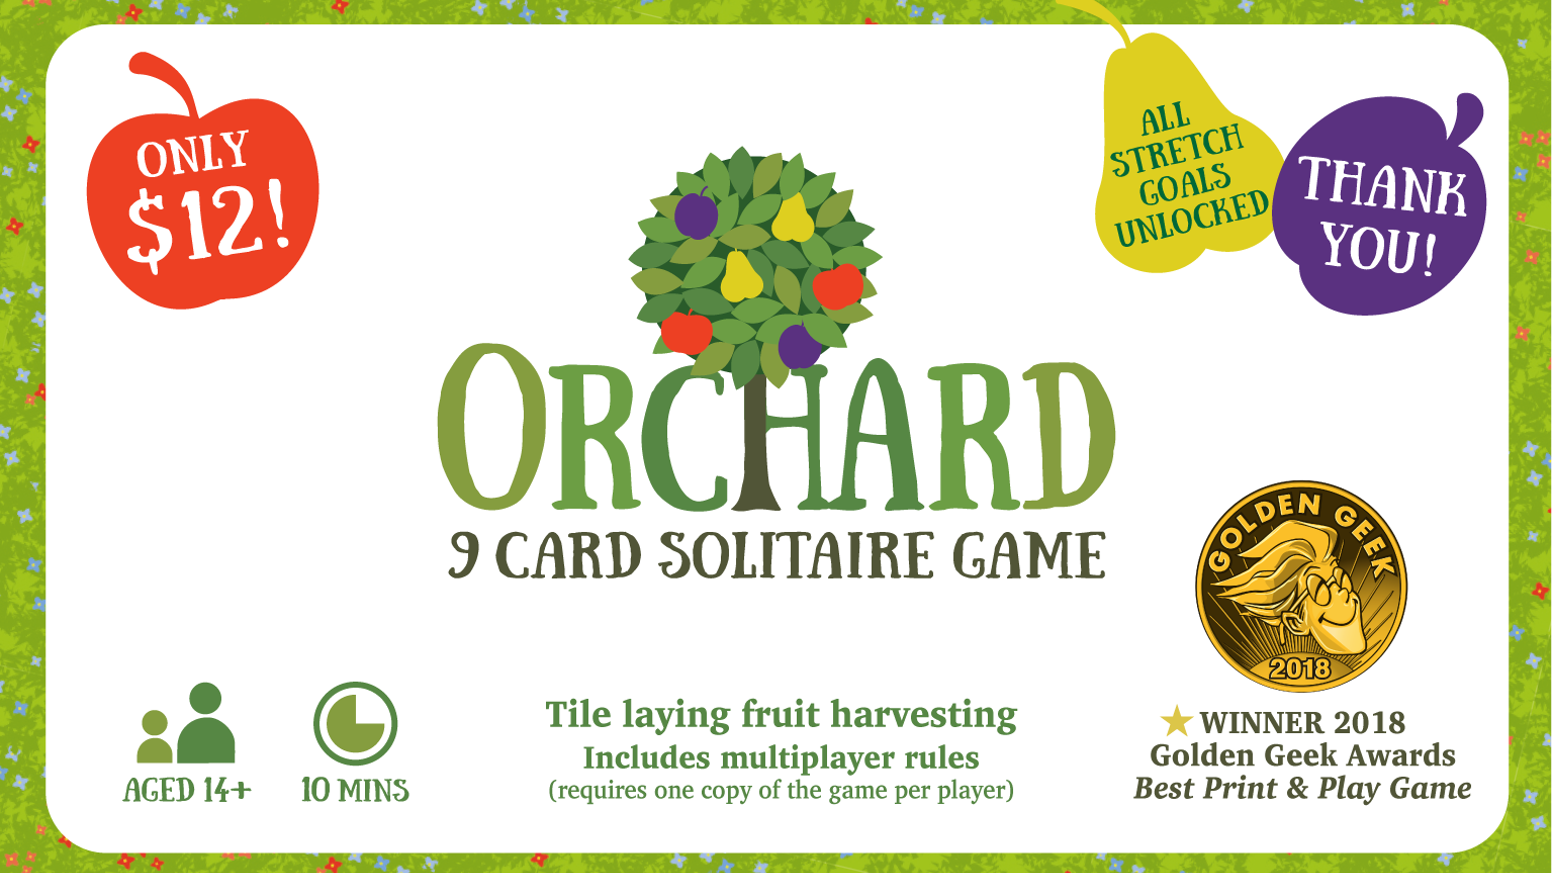 A small box solo game of harvesting fruit